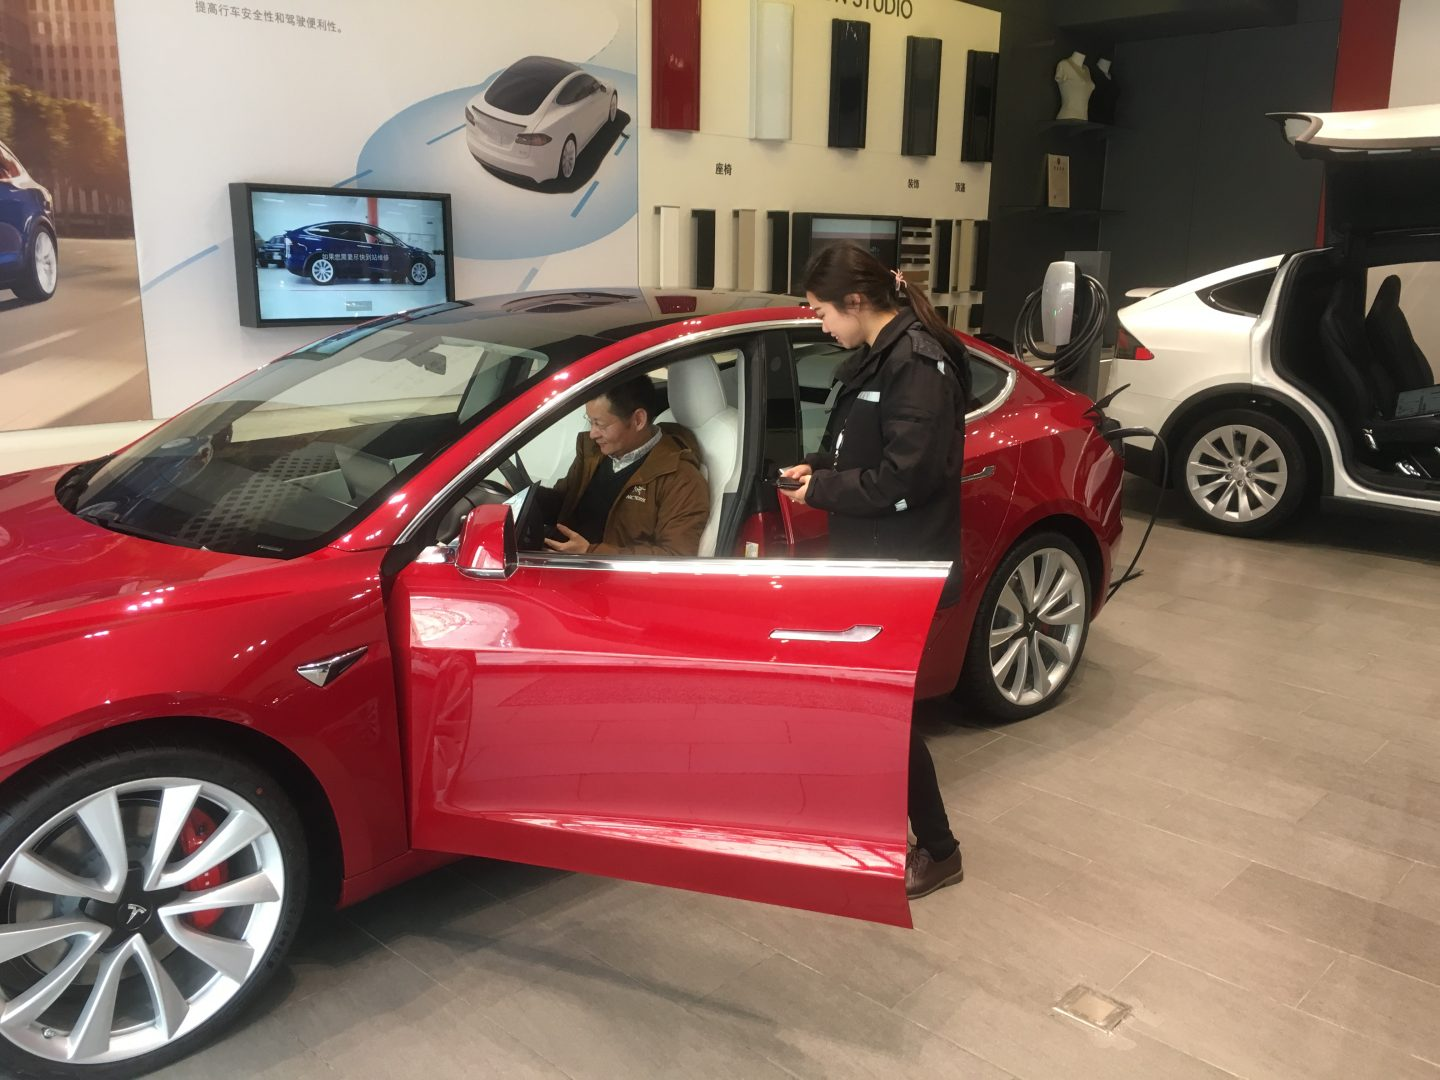 New Tesla factory near Berlin to create 'up to 10,000 jobs'